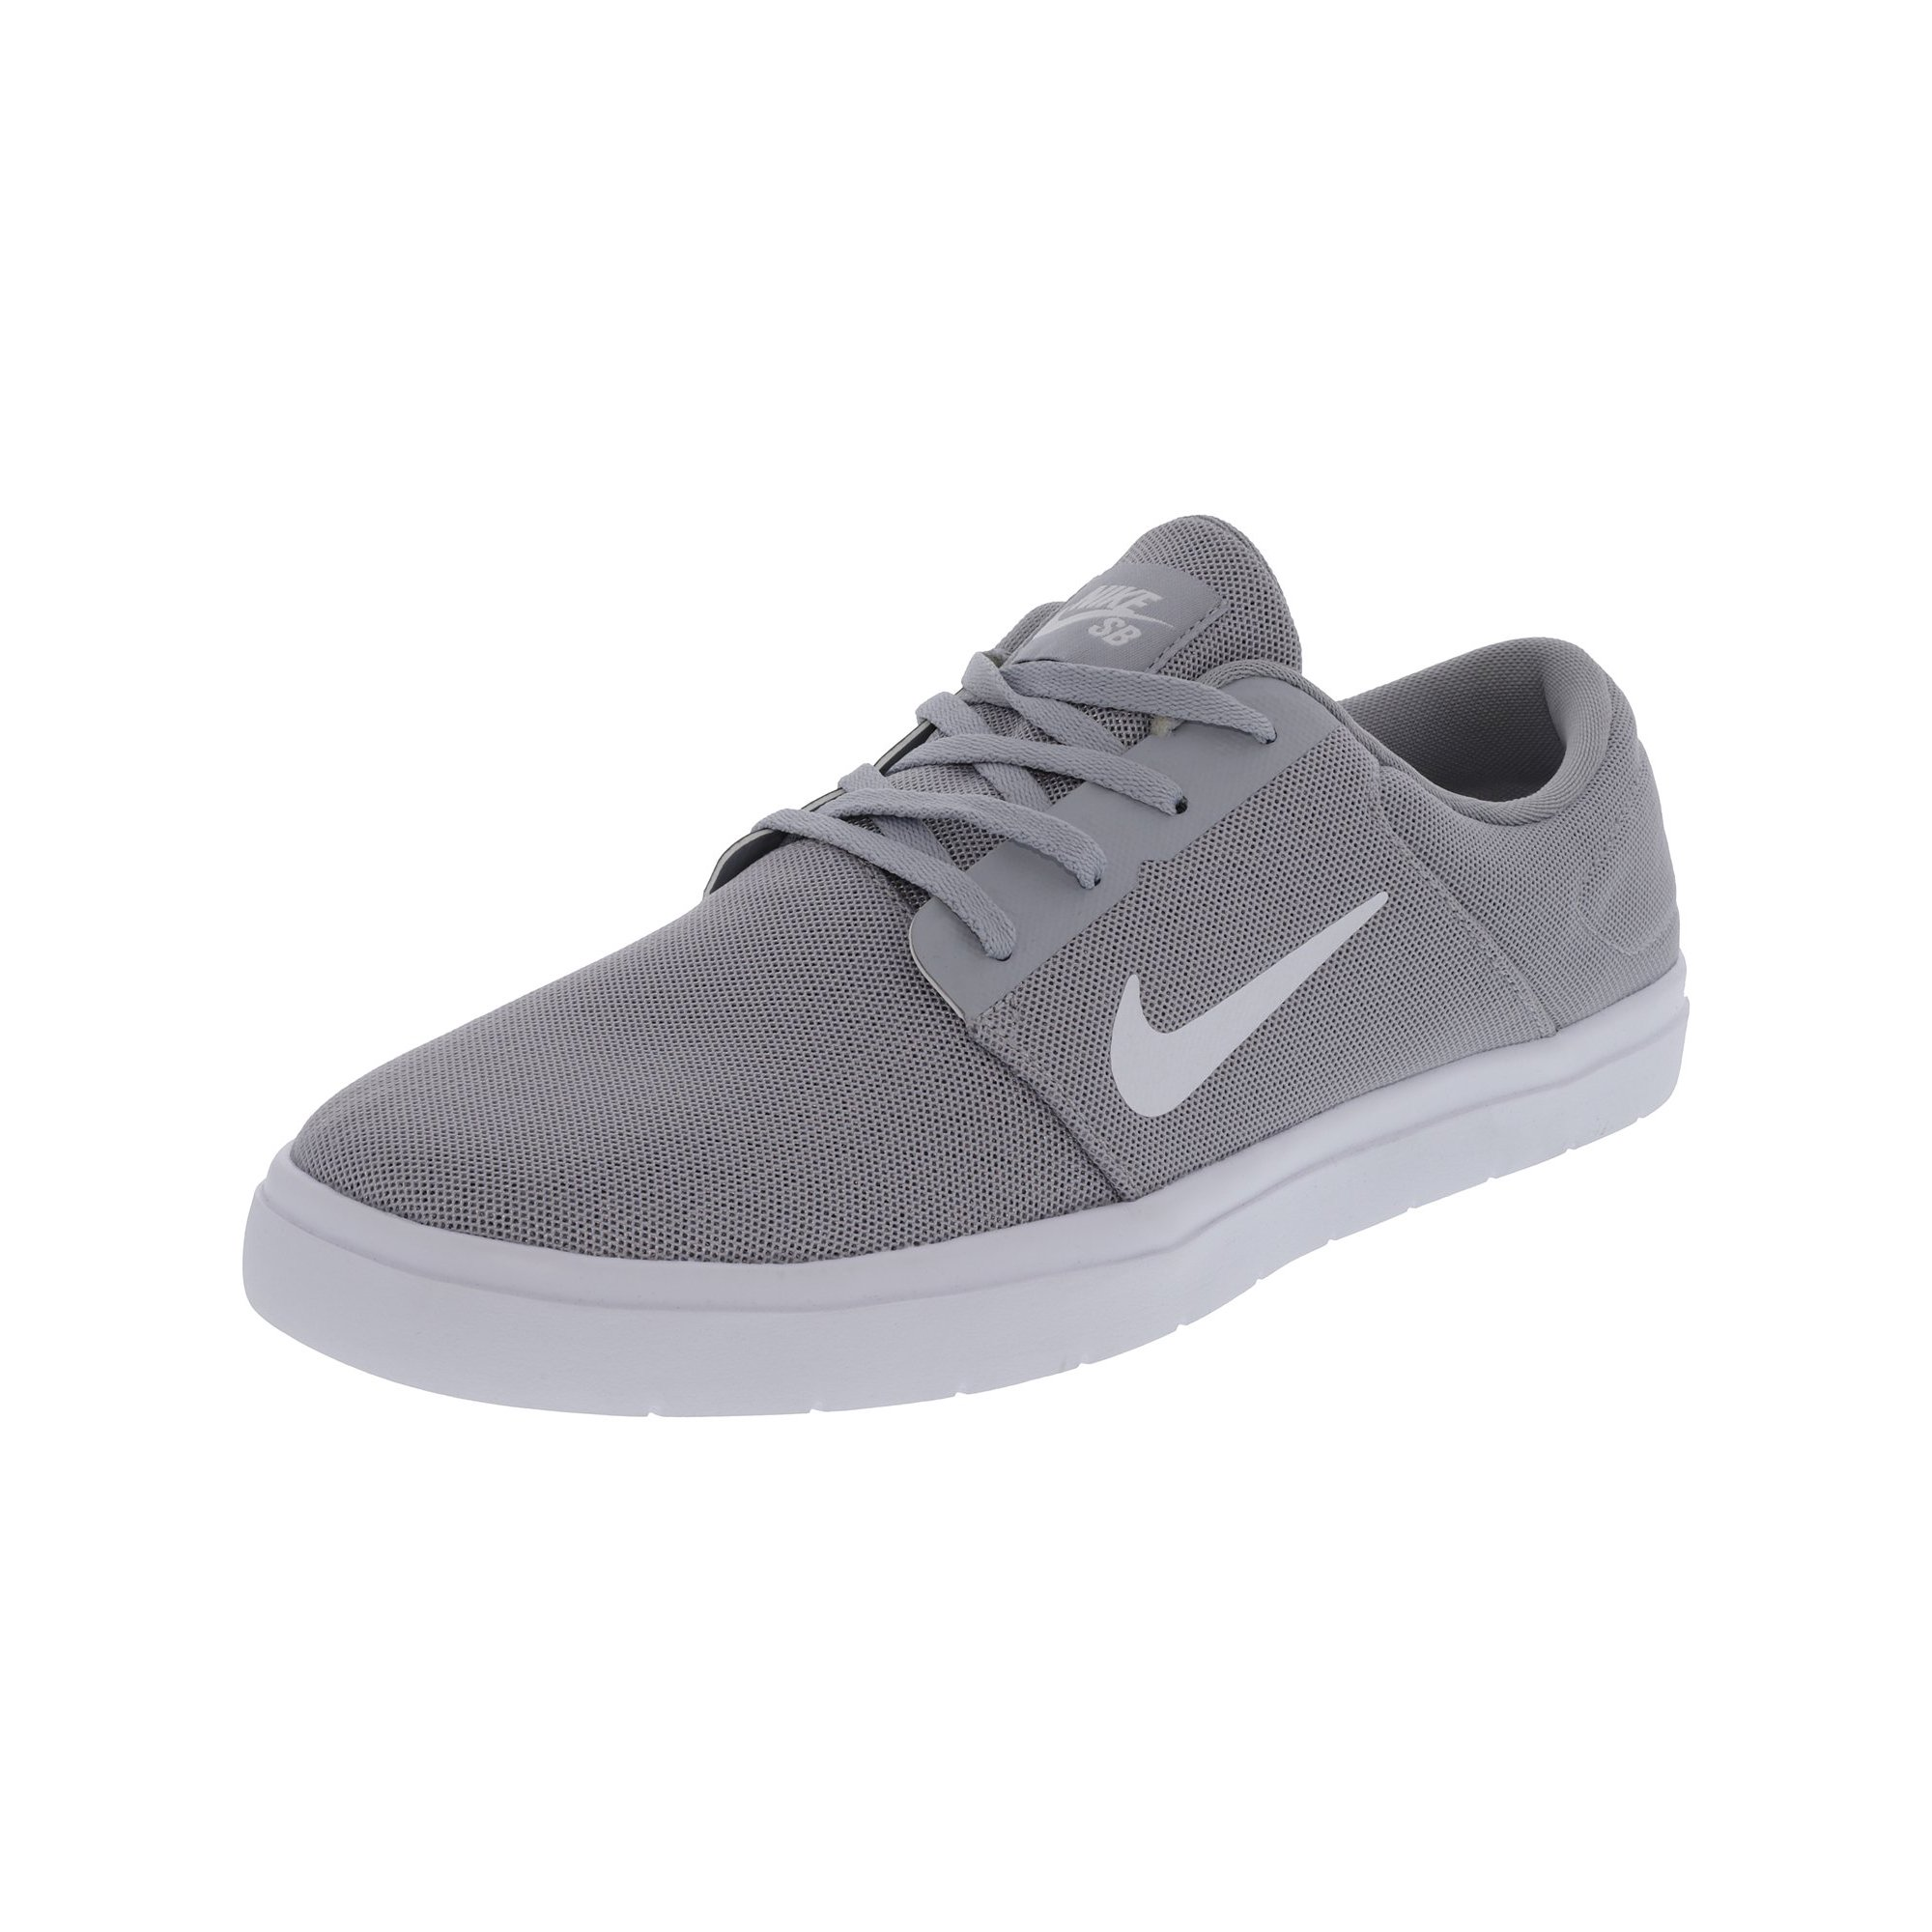 6a889151d3e Nike Men s Sb Portmore Ultralight Black   White-Black Ankle-High  Skateboarding Shoe - 12M